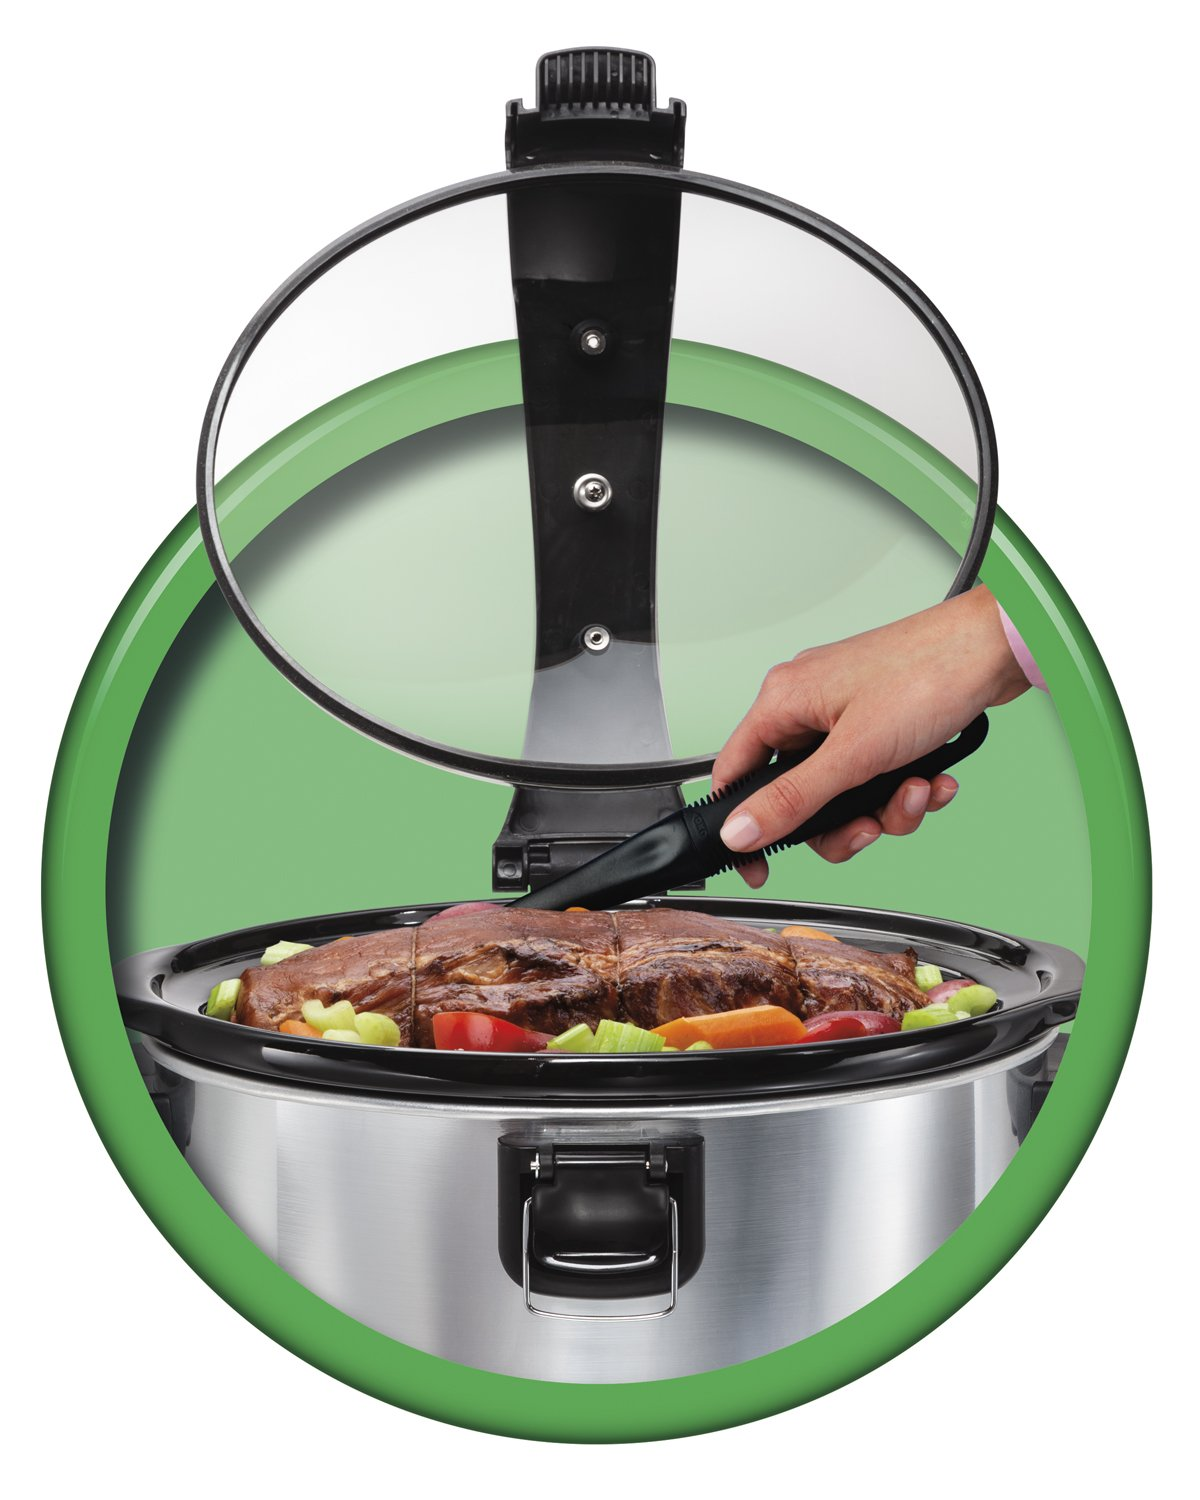 6-Quart Hamilton Beach 33467 Programmable Stay or Go Slow Cooker